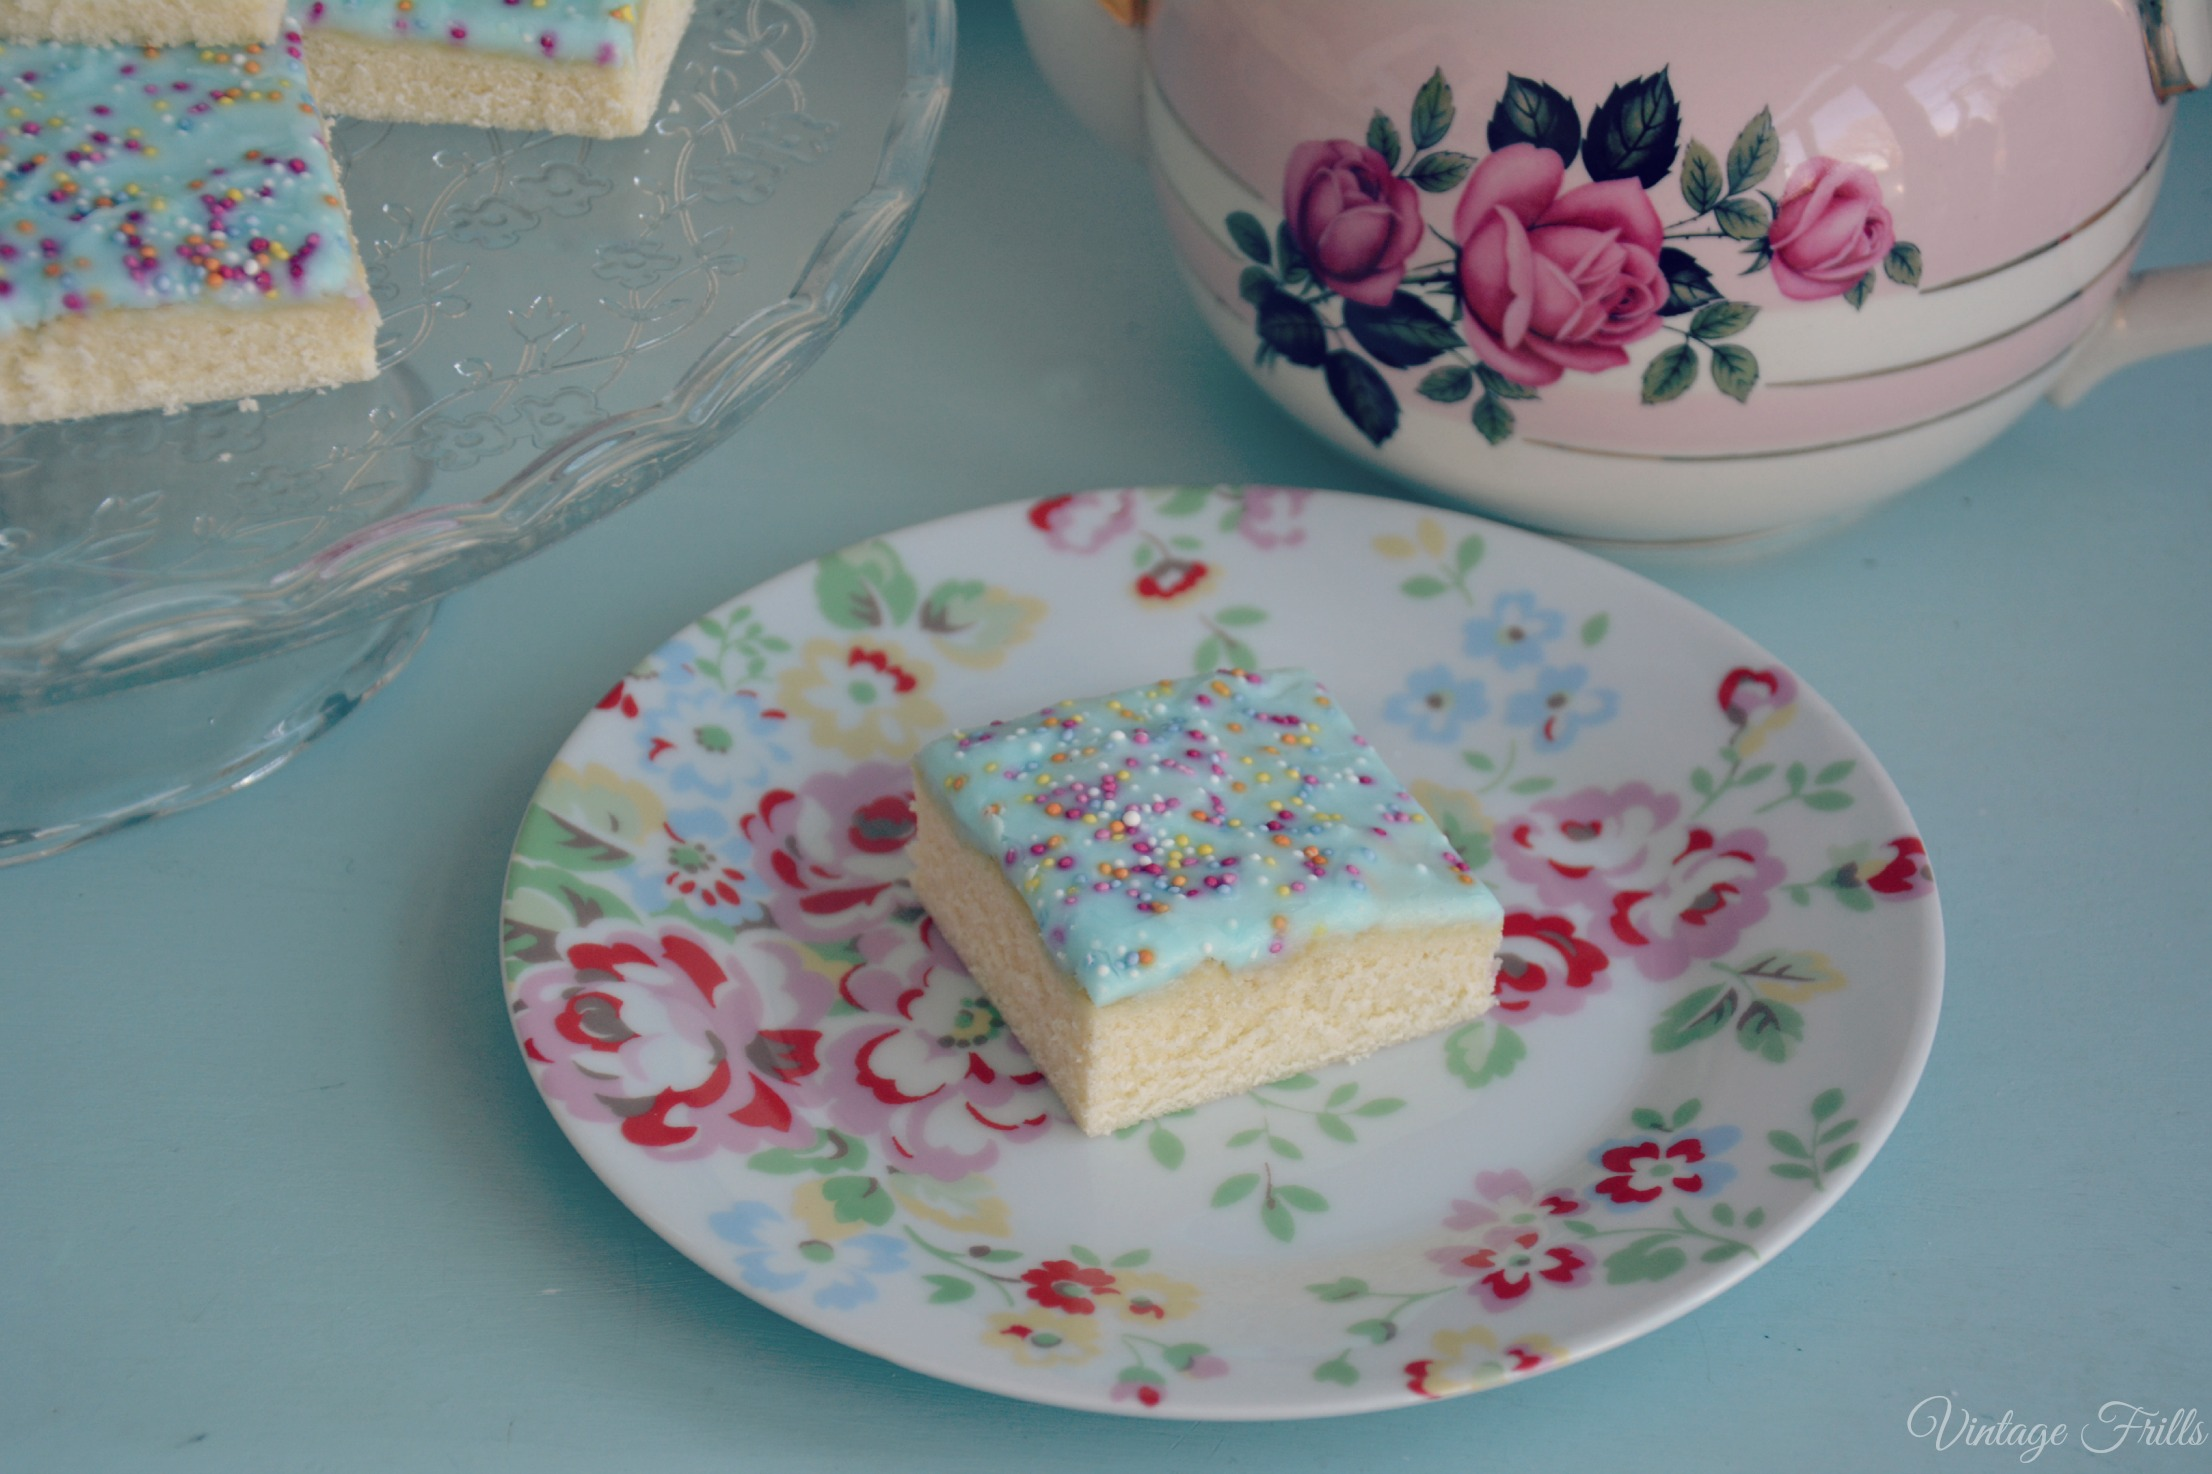 Sponge Cake With Icing And Sprinkles Recipe